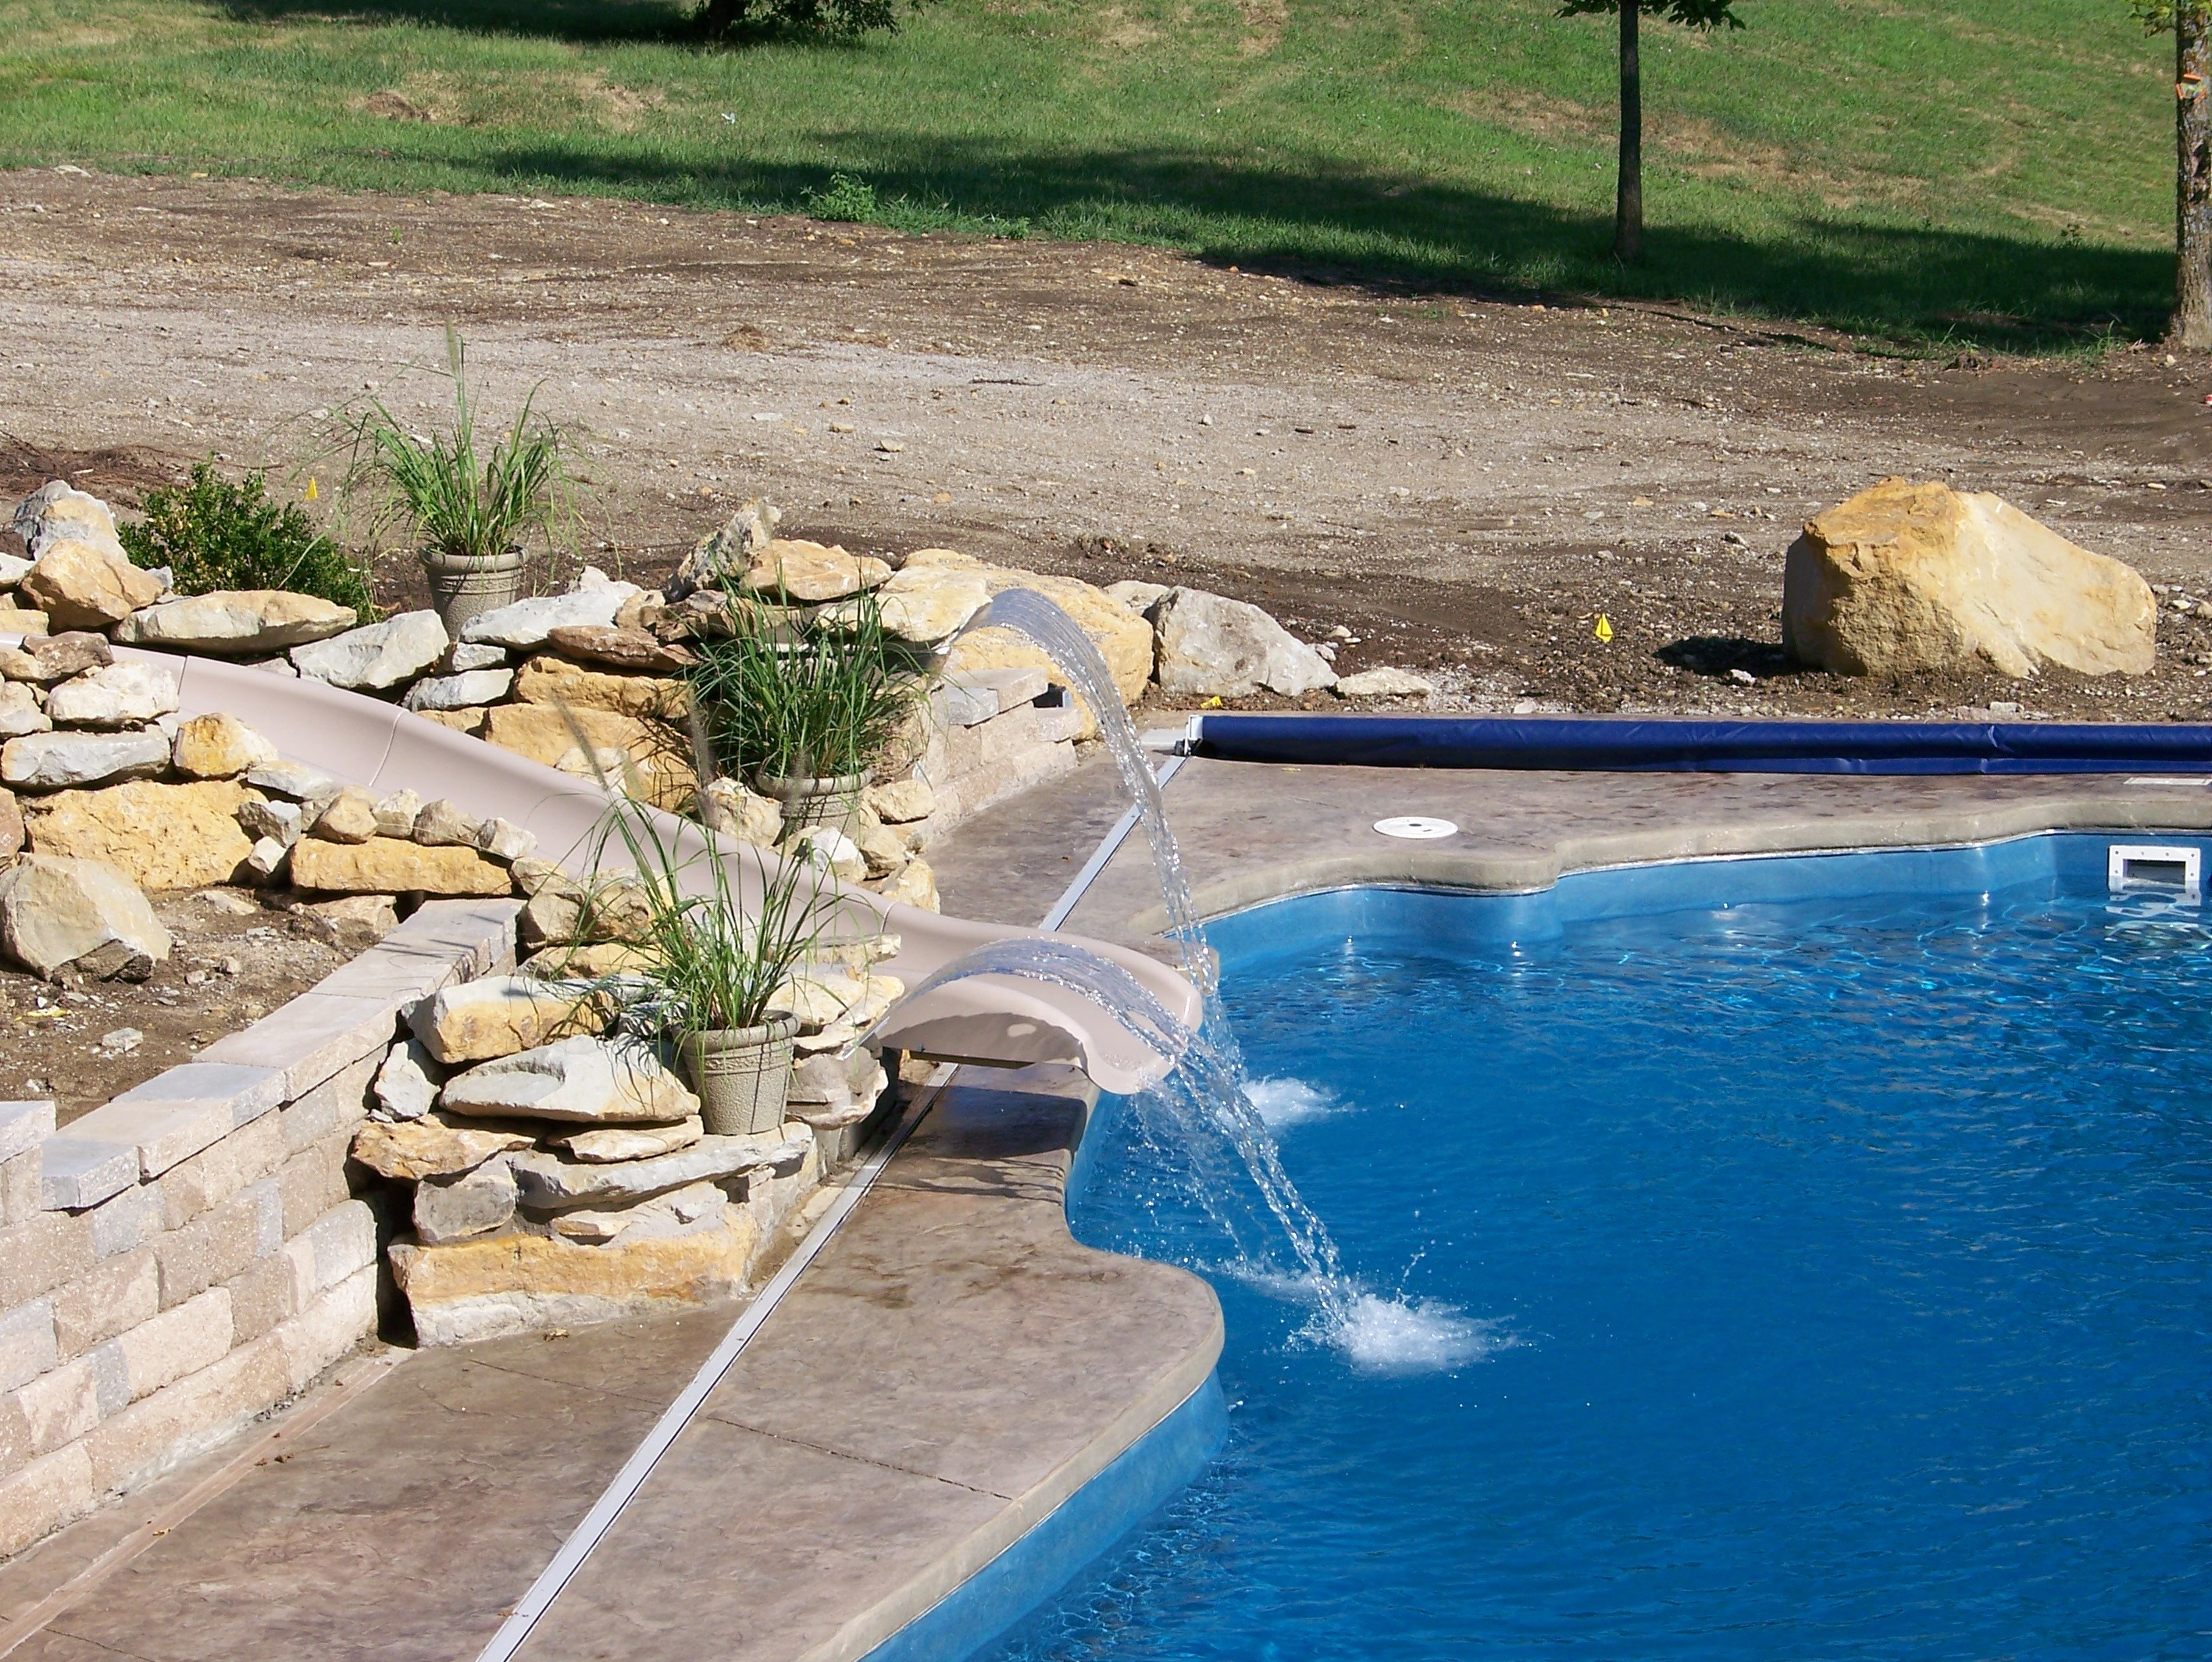 Fiberglass pool with slide swimming pool contractor tulsa ok - Swimming pool contractors oklahoma city ...